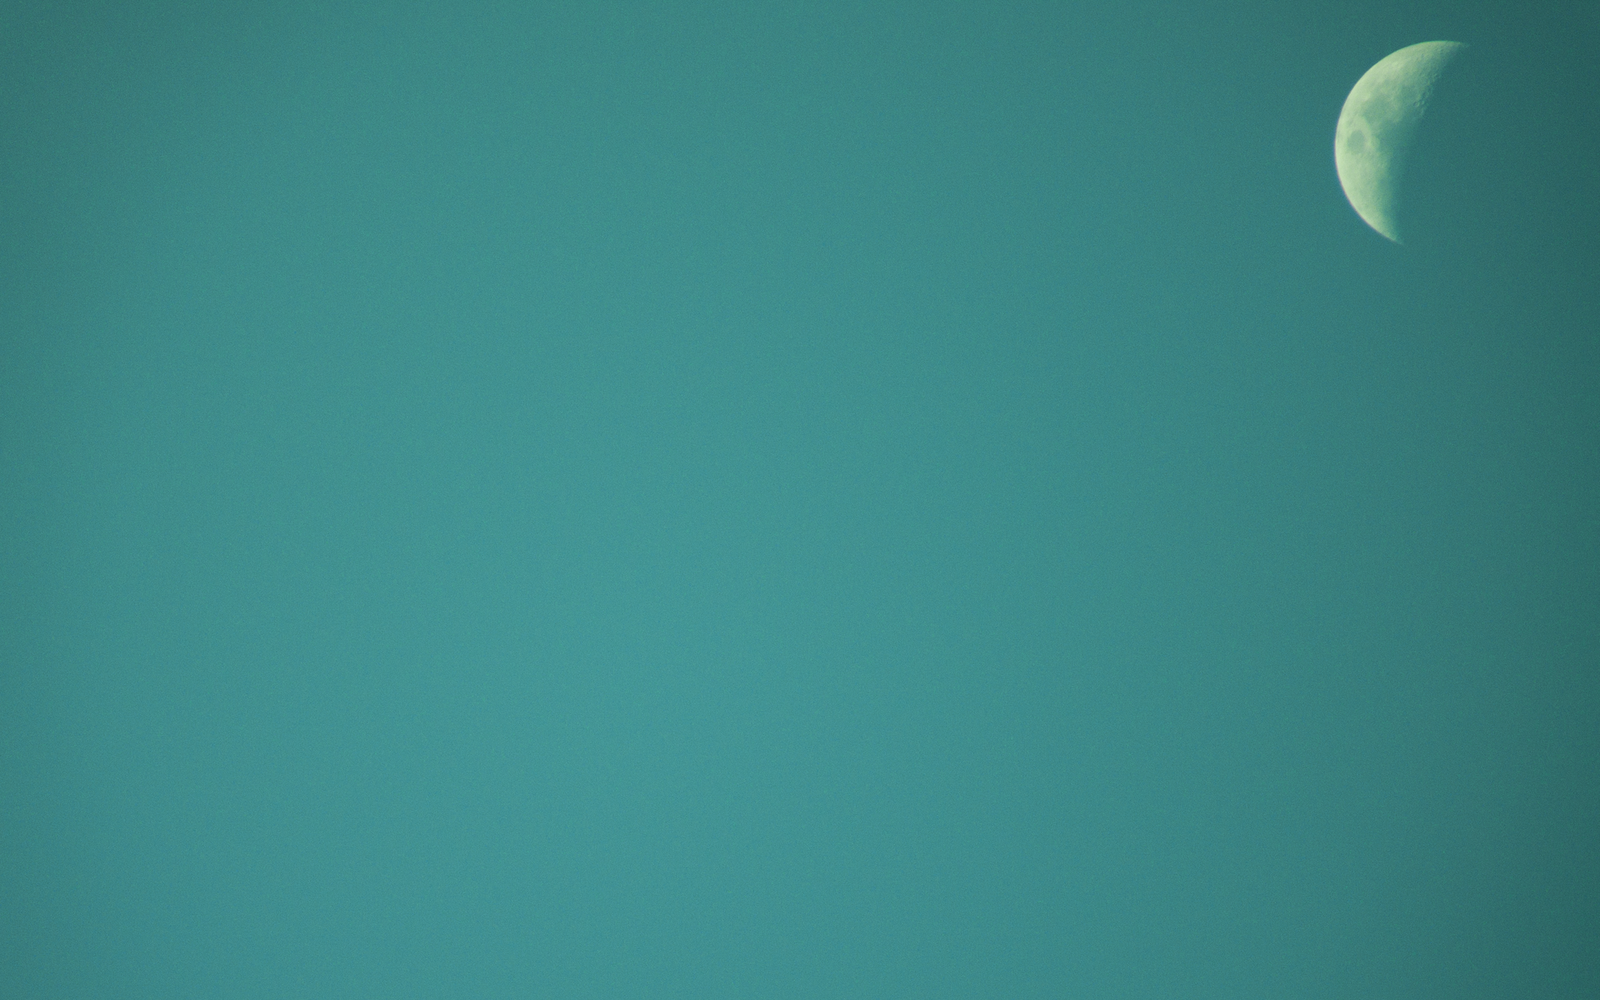 Teal Desktop Wallpaper Wallpapersafari